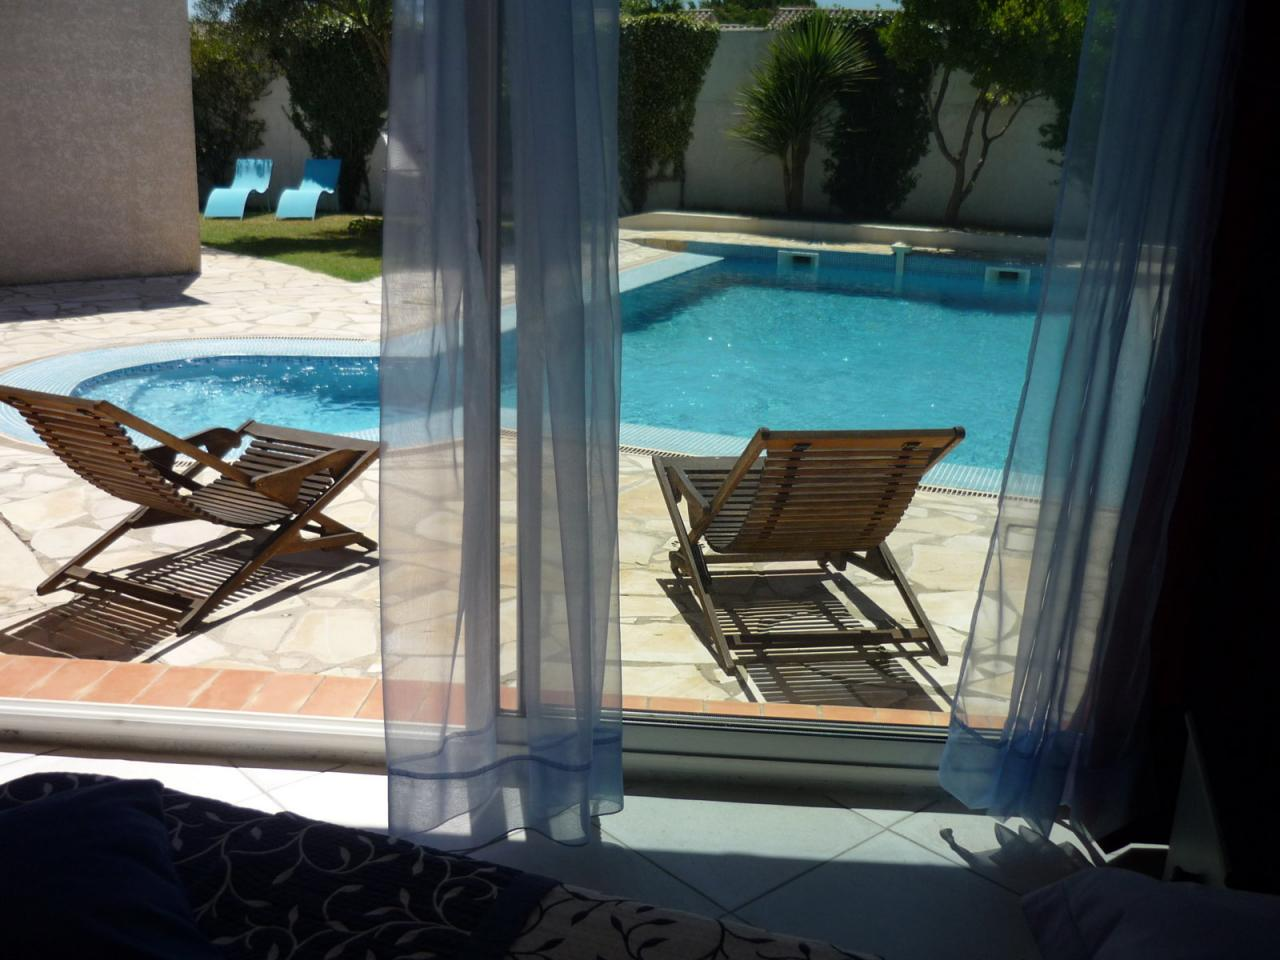 Sun loungers and pool